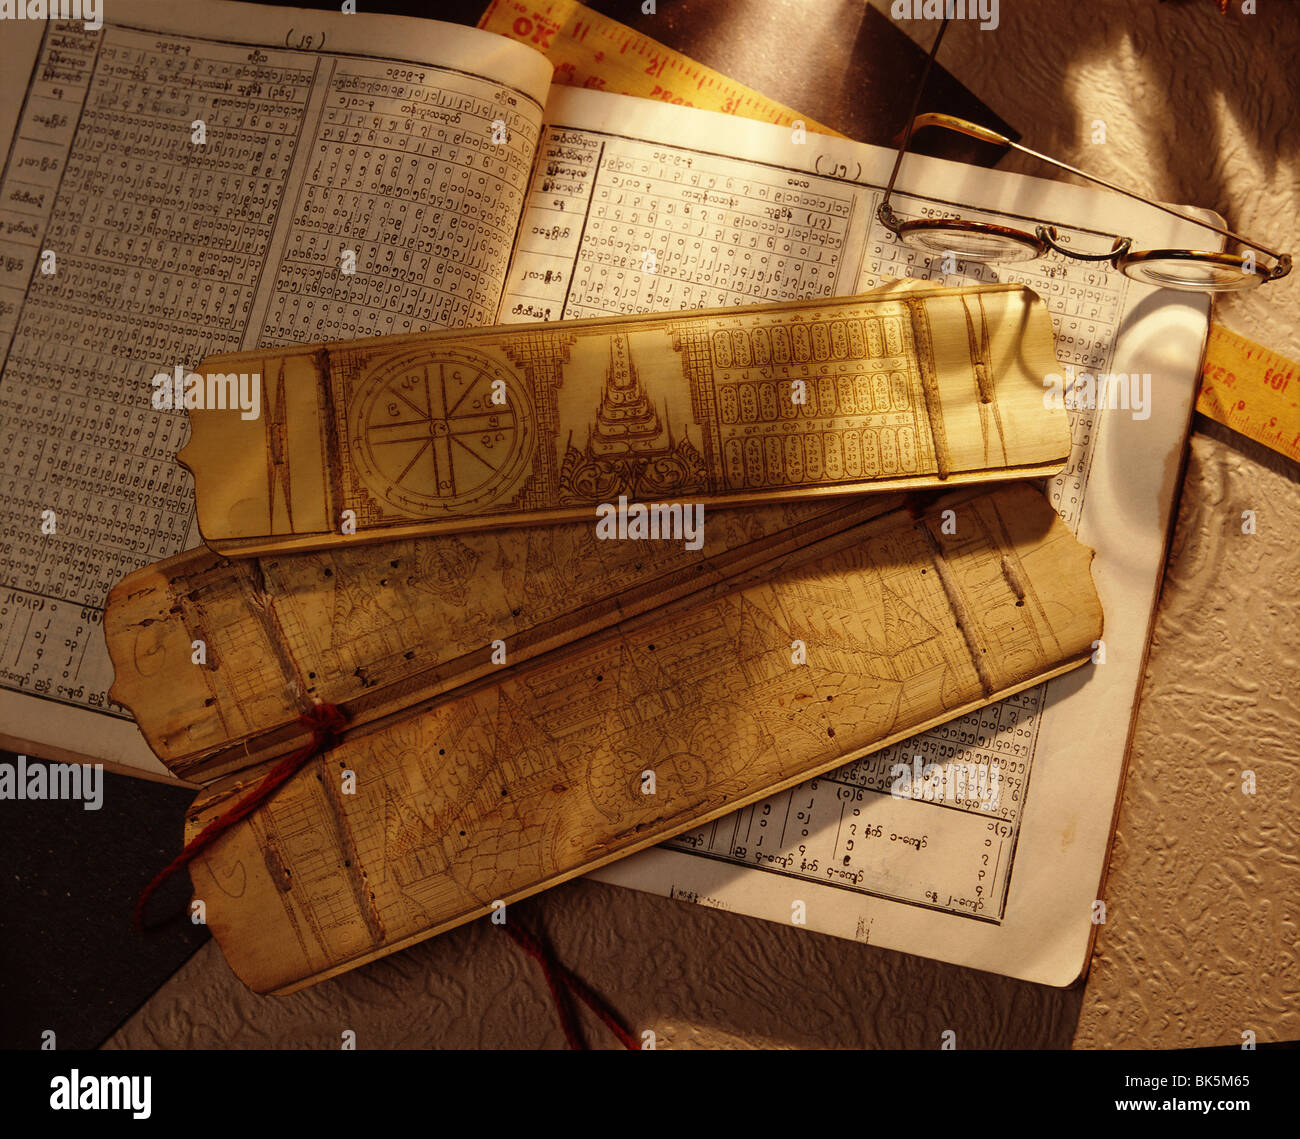 Astrology books, Myanmar (Burma), Asia Stock Photo: 29014445